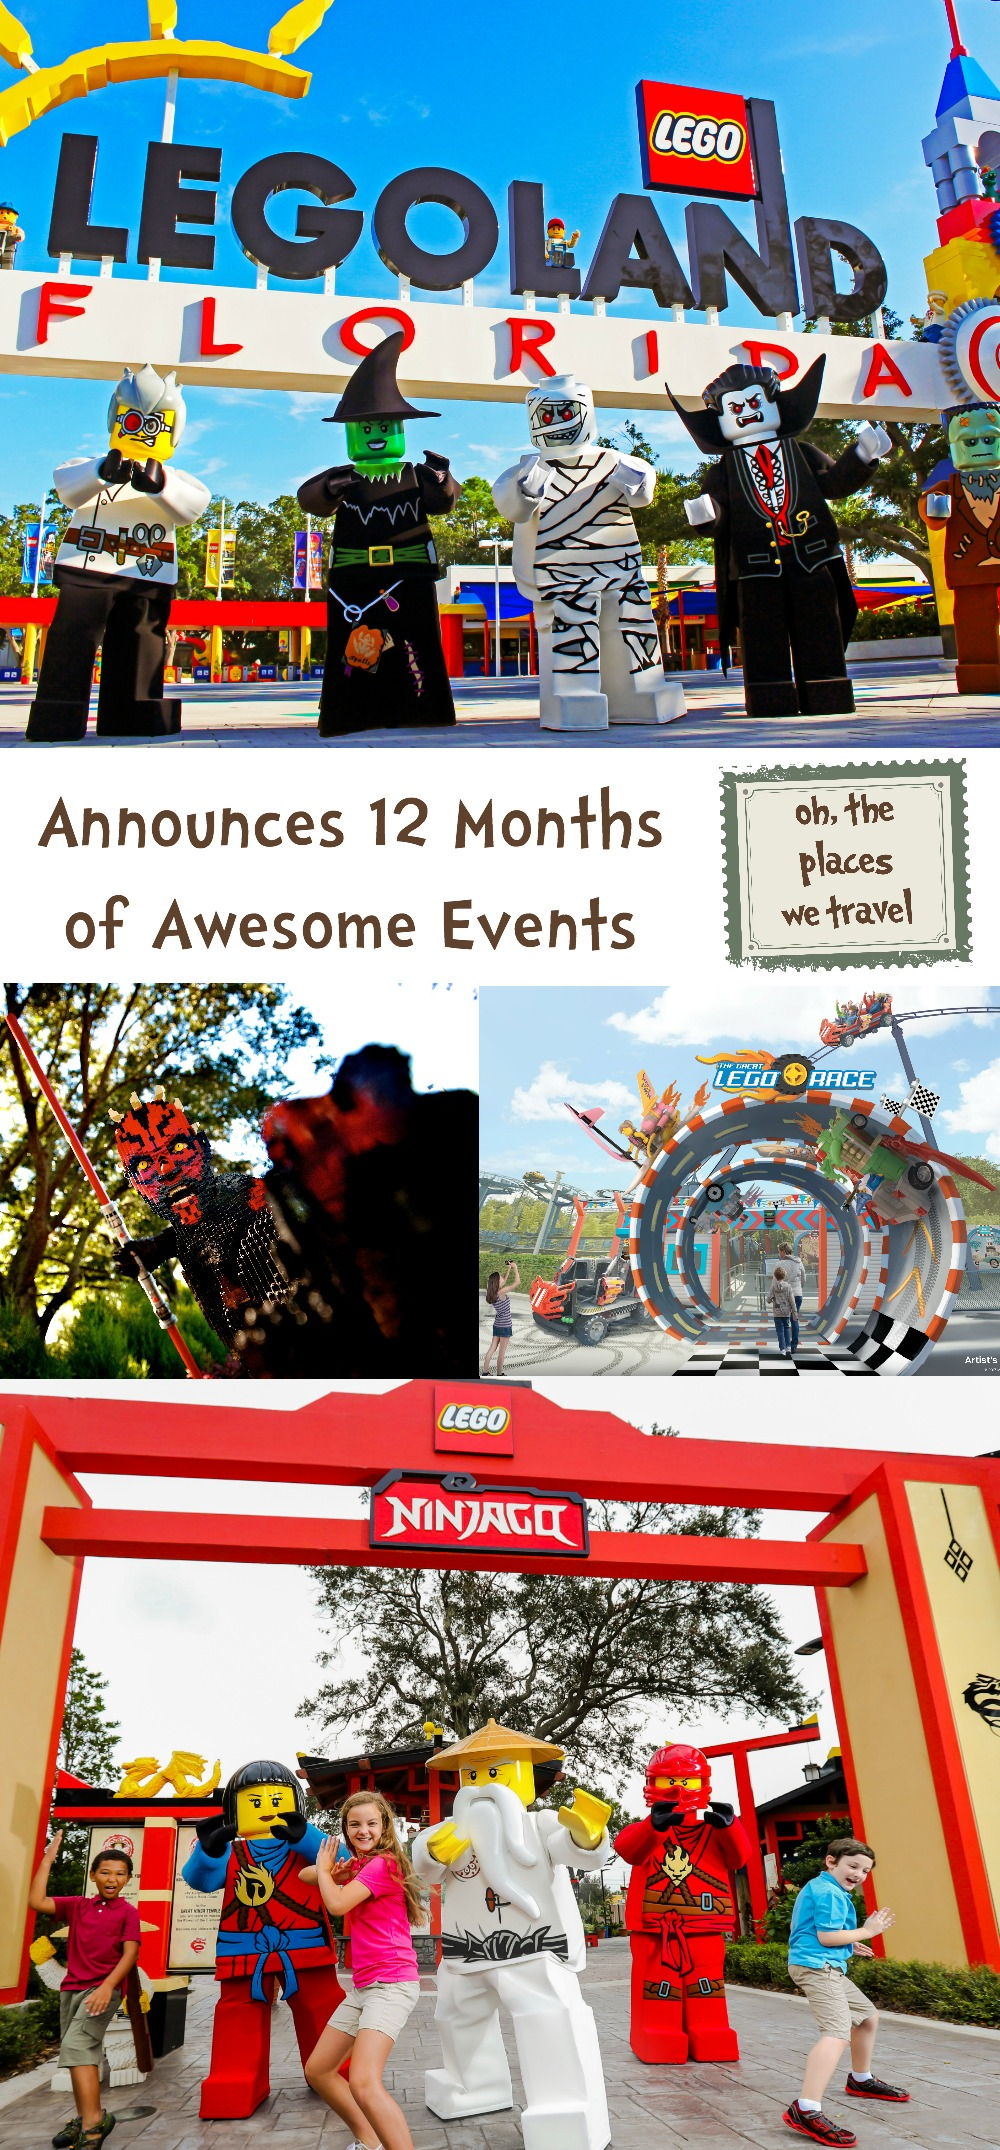 LegoLand 12 Months of Awesome Events